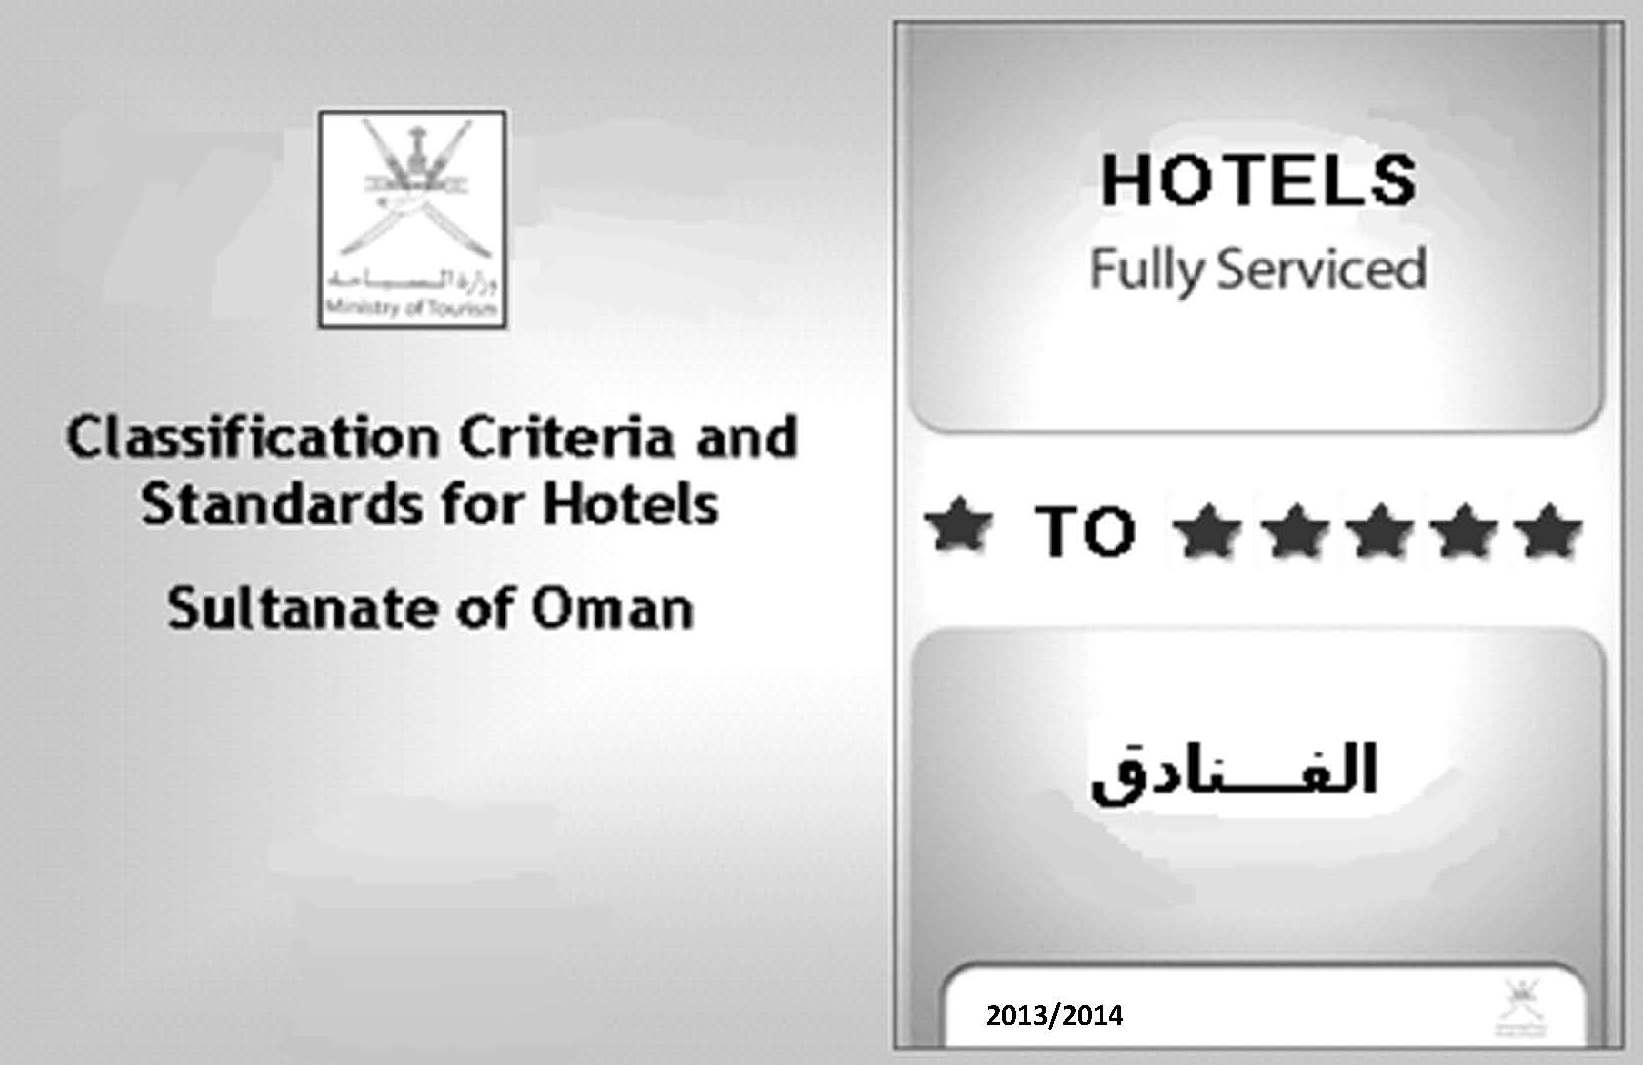 Hotel Regulations Codes Requirements in Oman